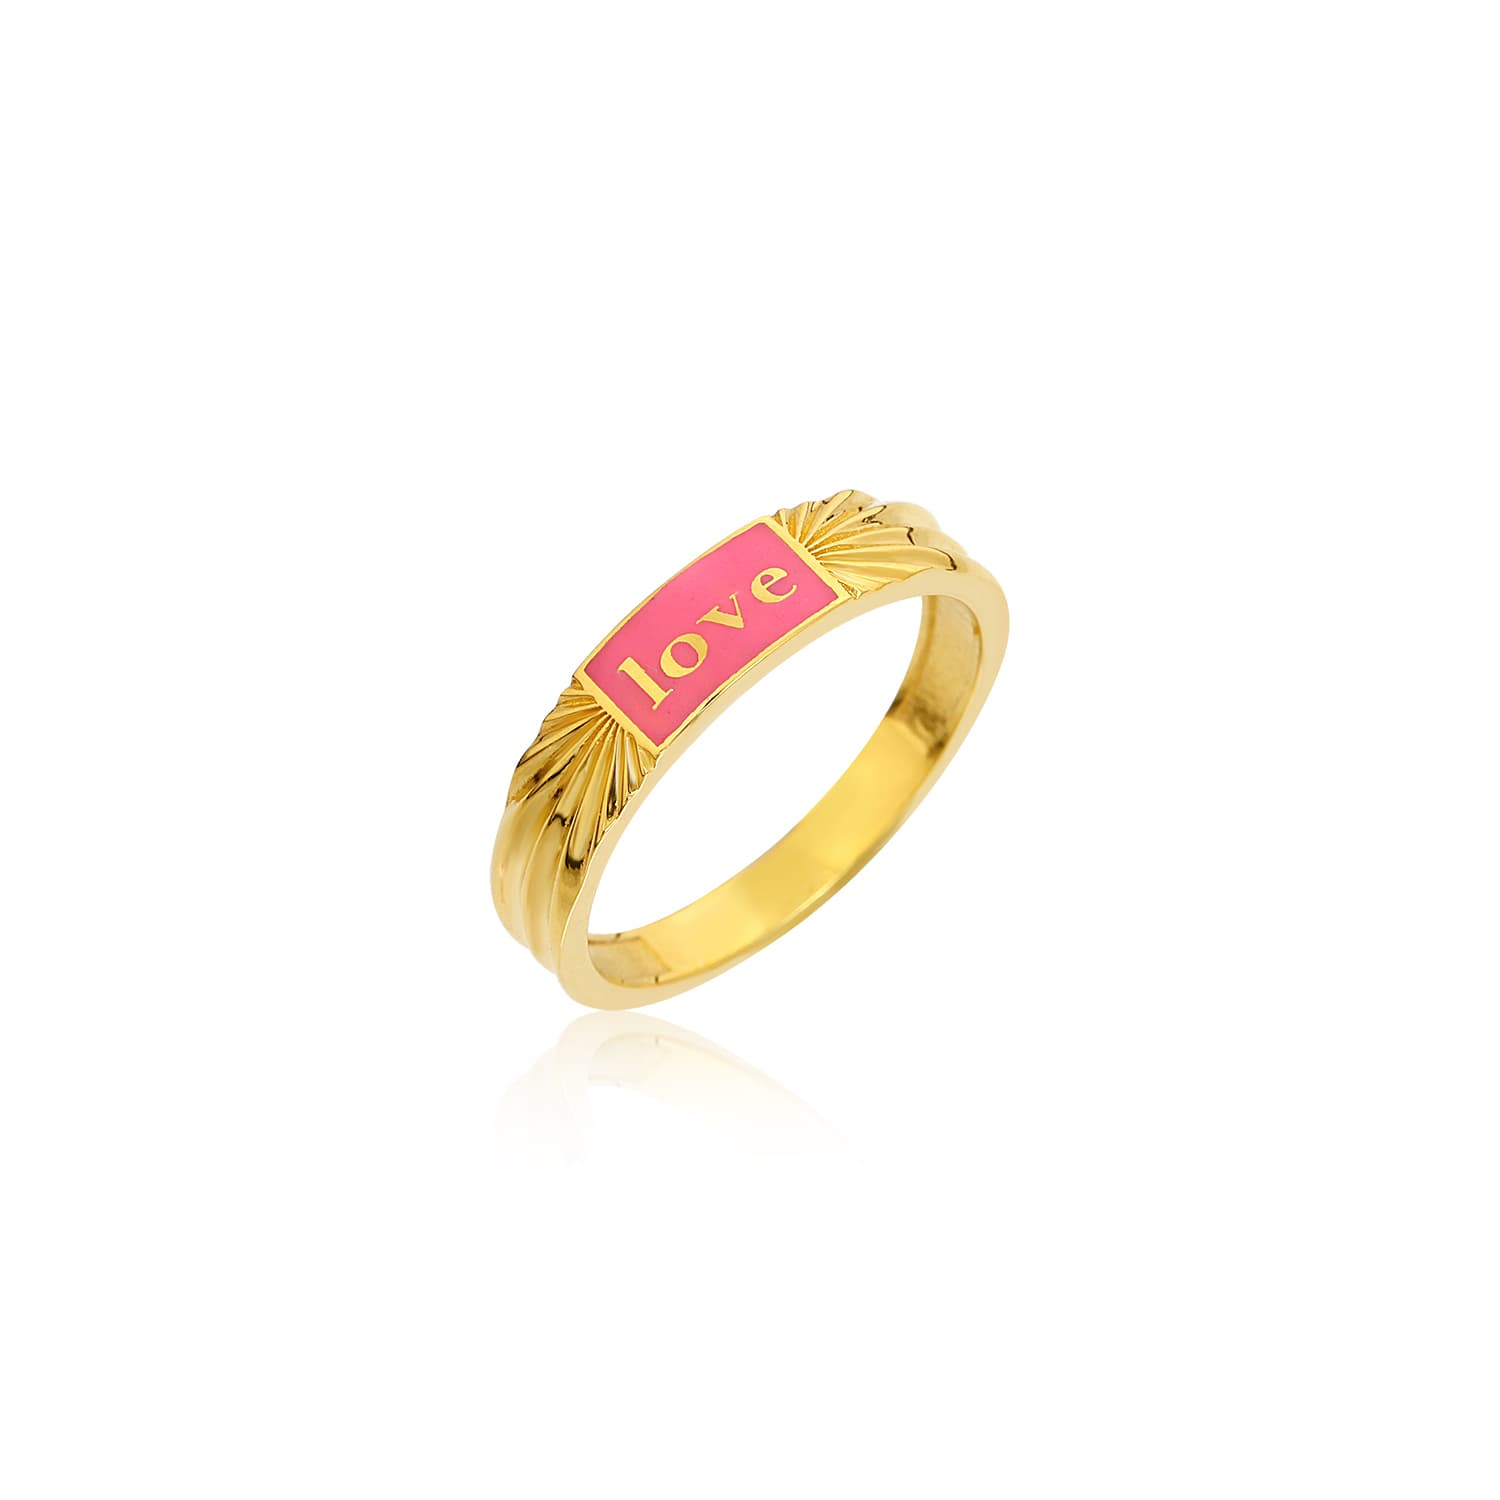 Gold plated enamel ring models